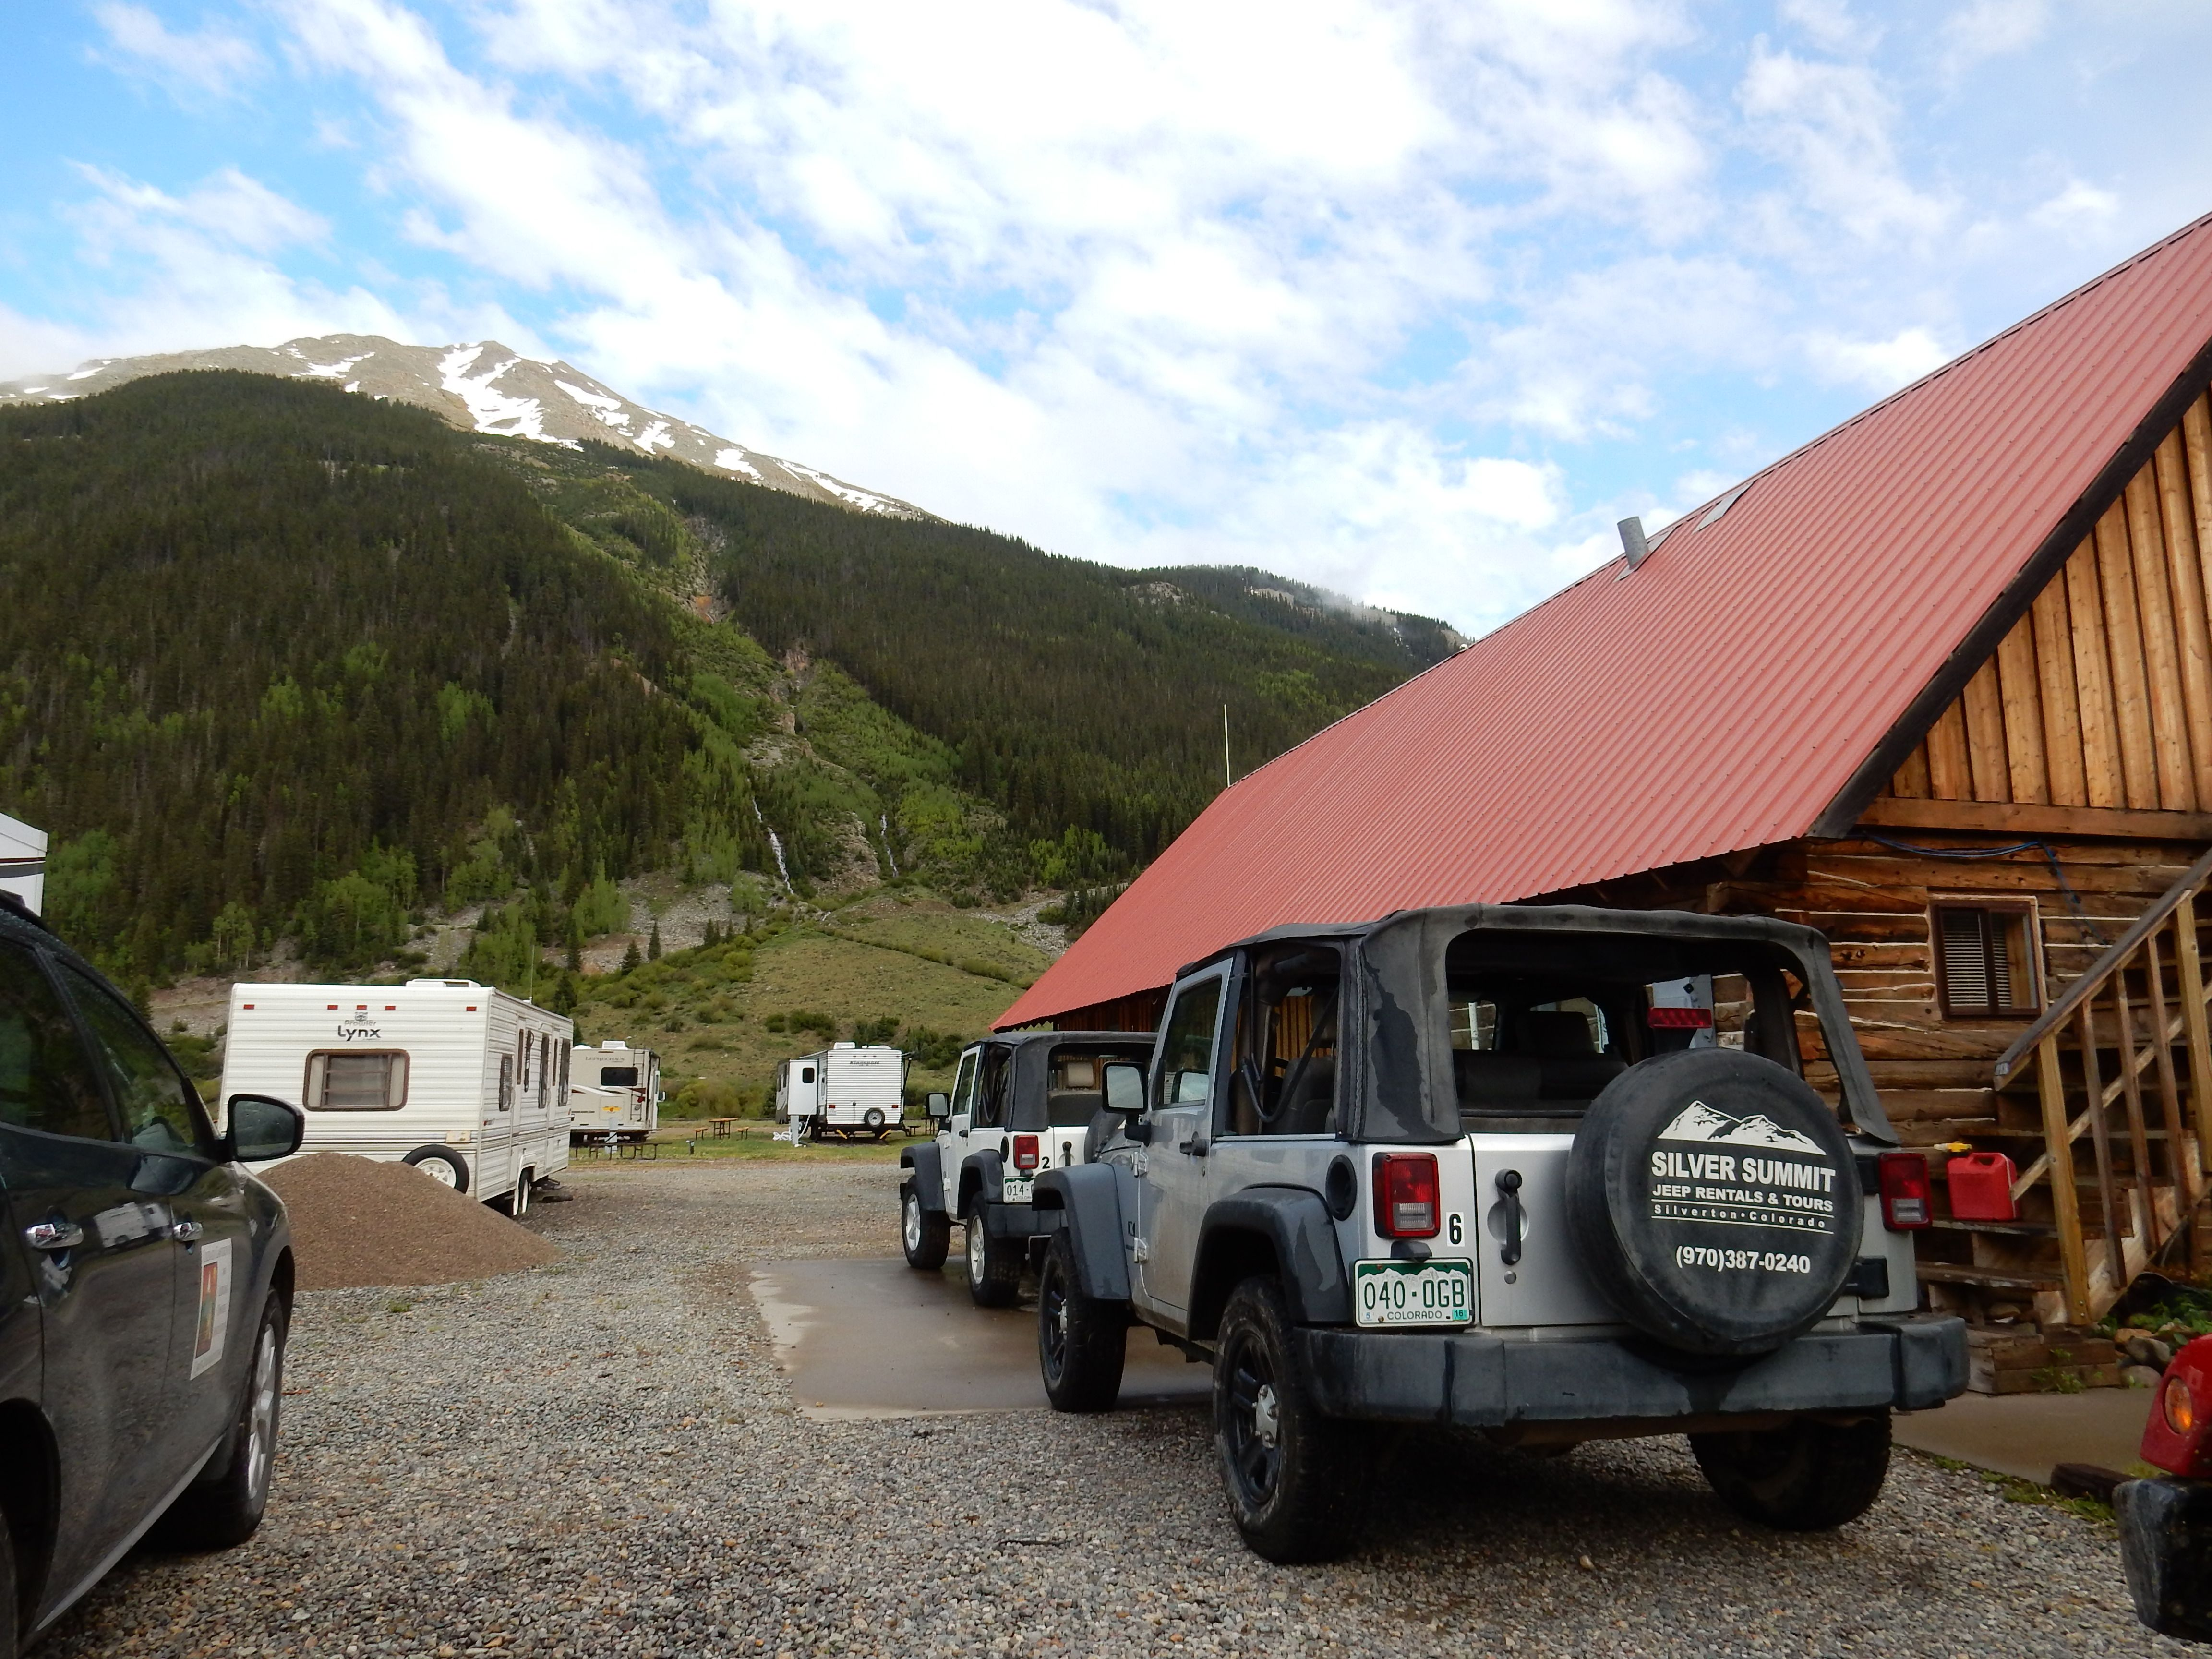 Silver Summit RV Park | Places to Camp | Rv parks, Park, Camping